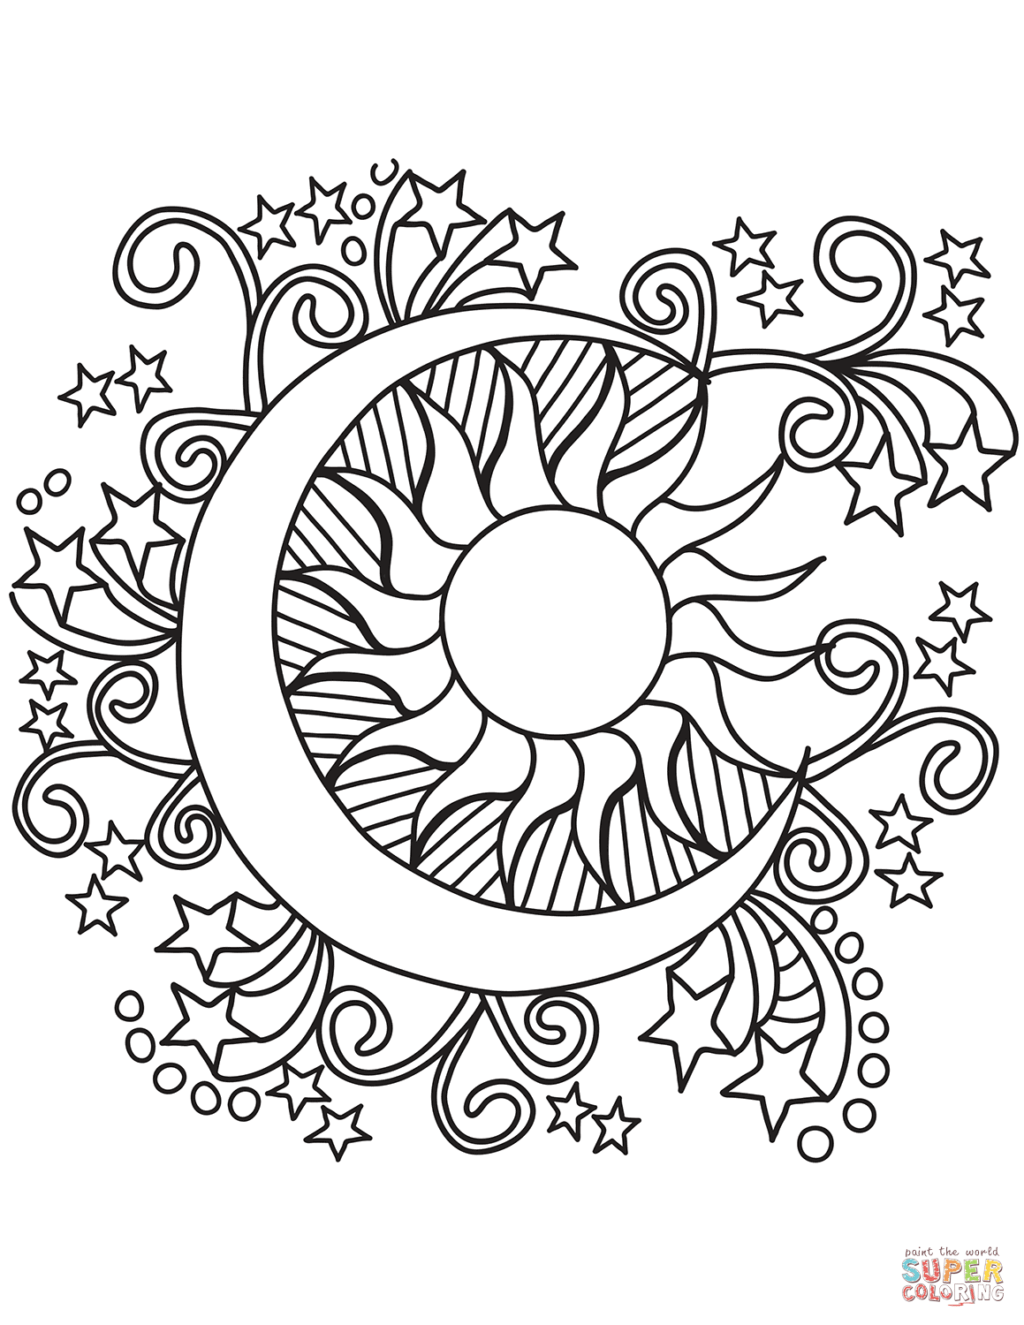 Worksheet Coloring Children Around The Worlds Free Lord